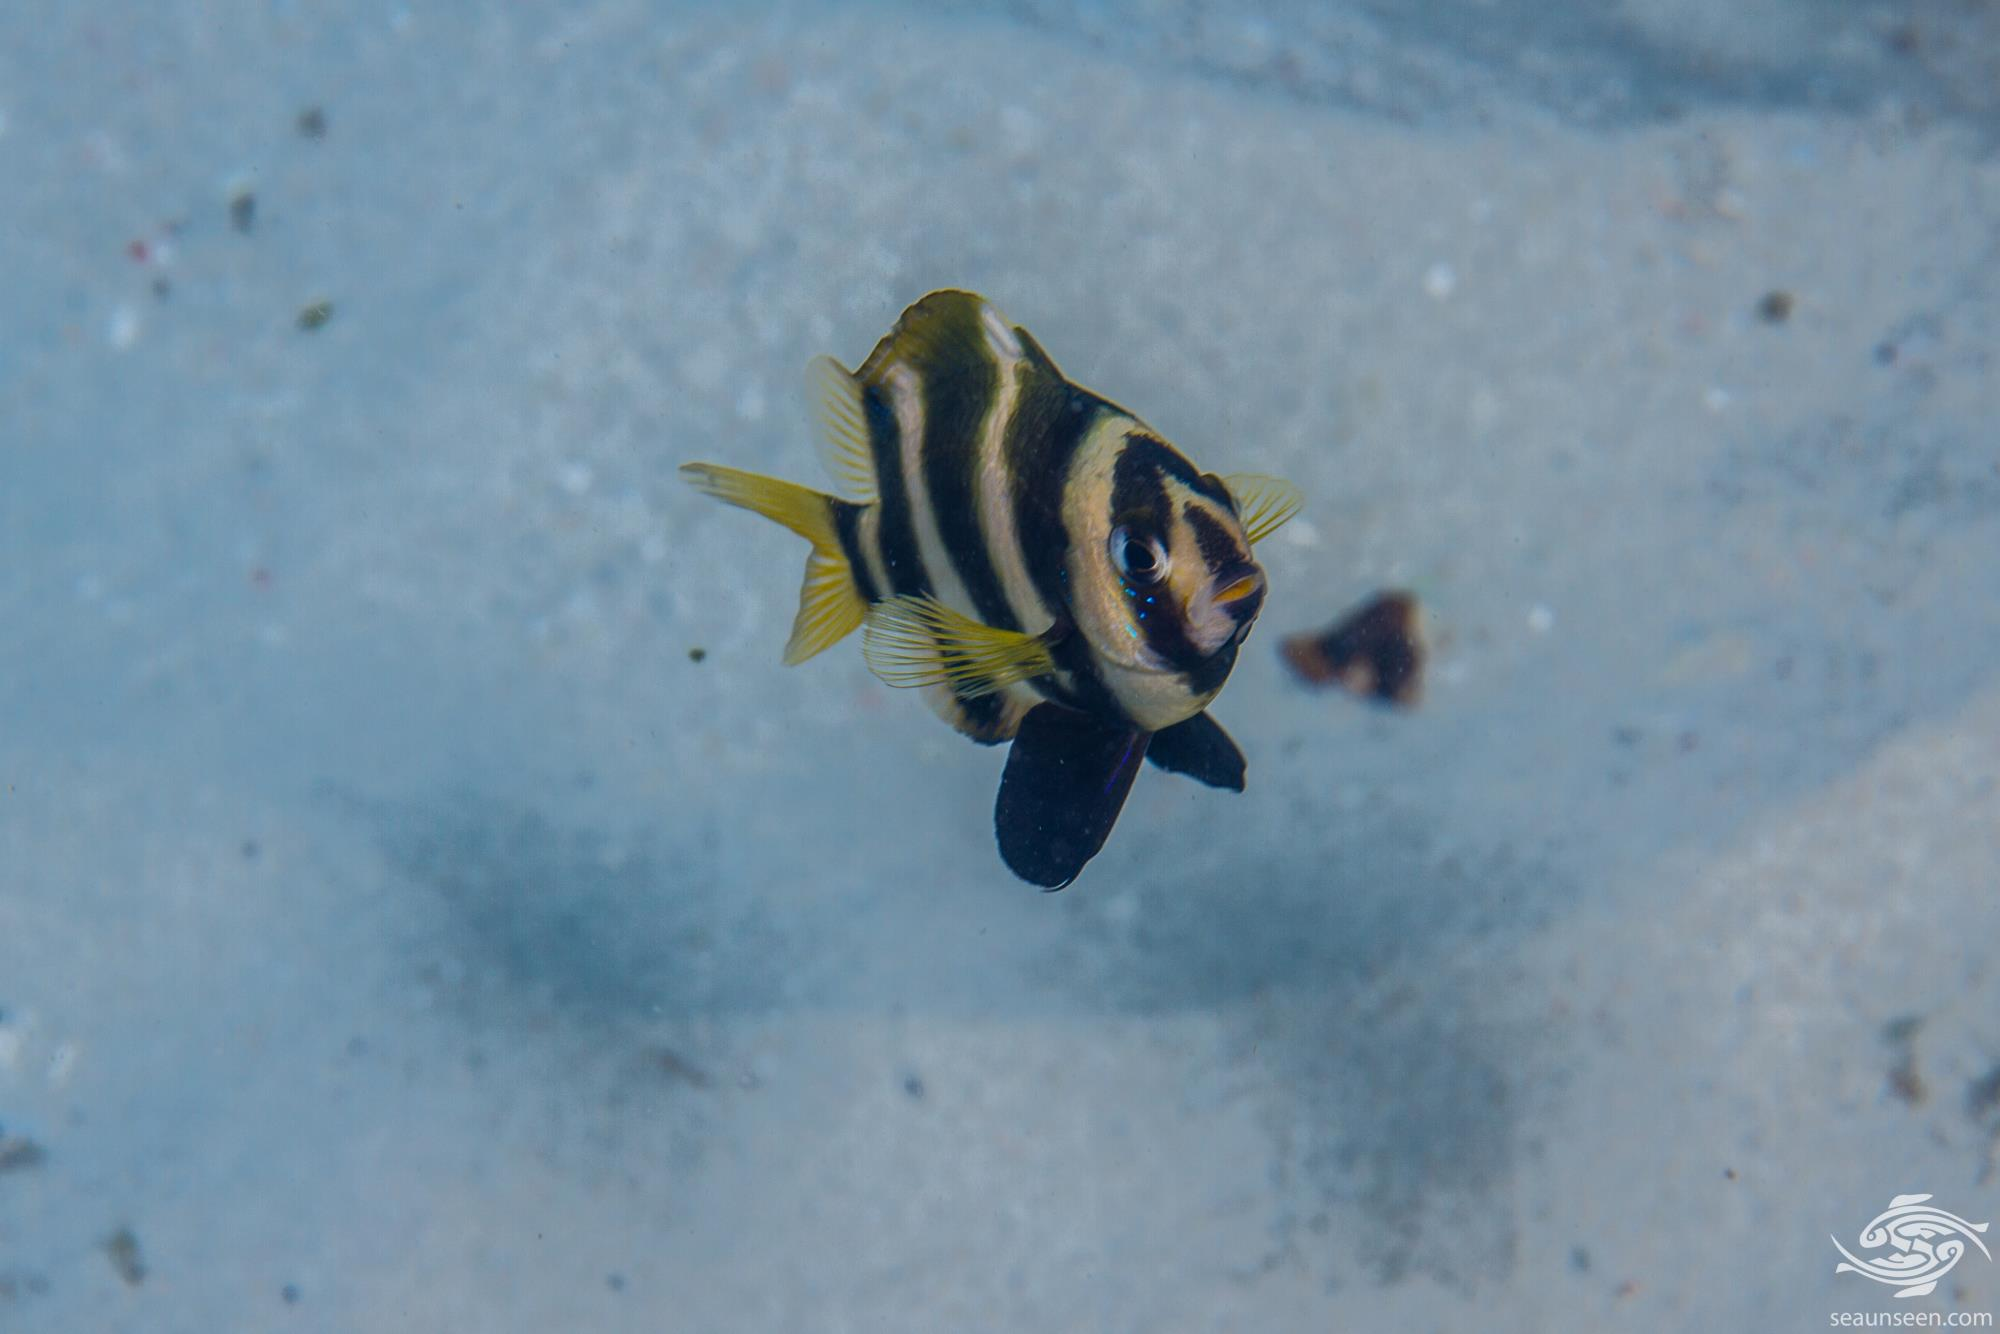 Tiger Damselfish (Chrysiptera annulata) also known as the Footballer demoiselle